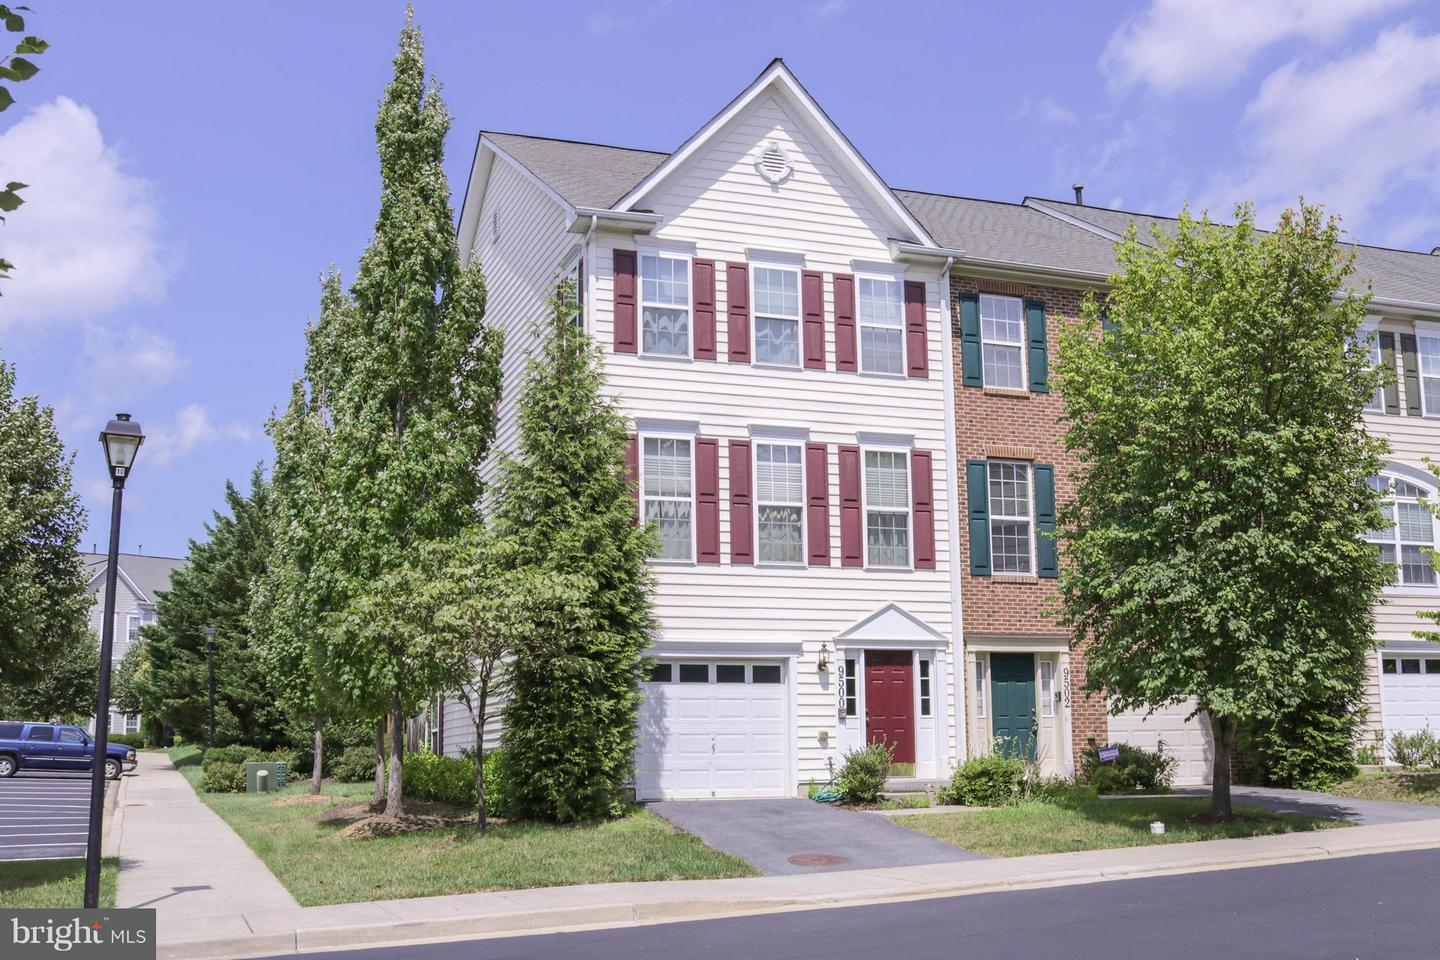 Condo / Townhouse for Rent at VILLAGES OF URBA, 9500 Ward Place Frederick, Maryland 21704 United States